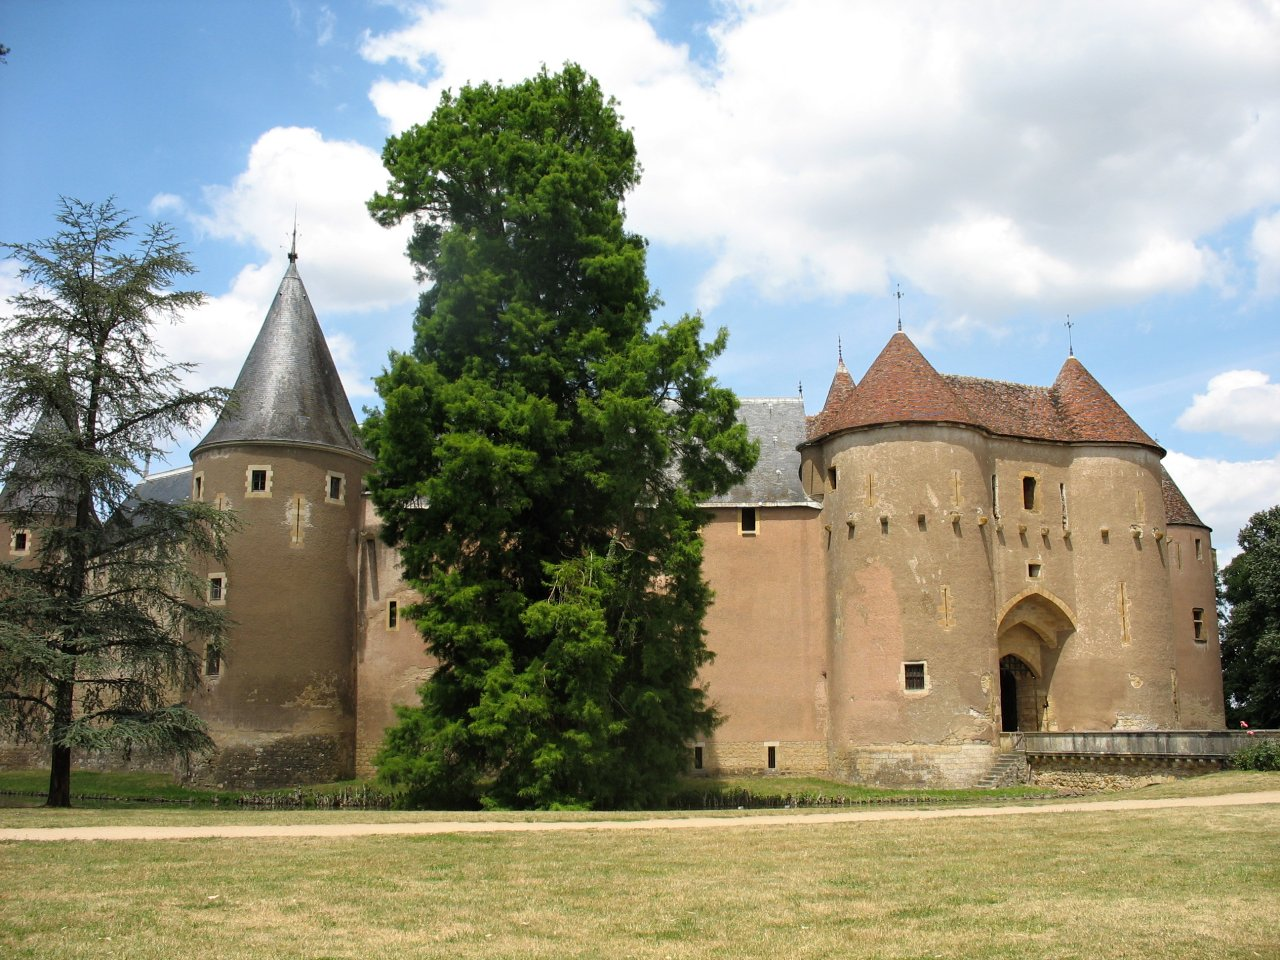 Ainay-le-Vieil, Castles in France